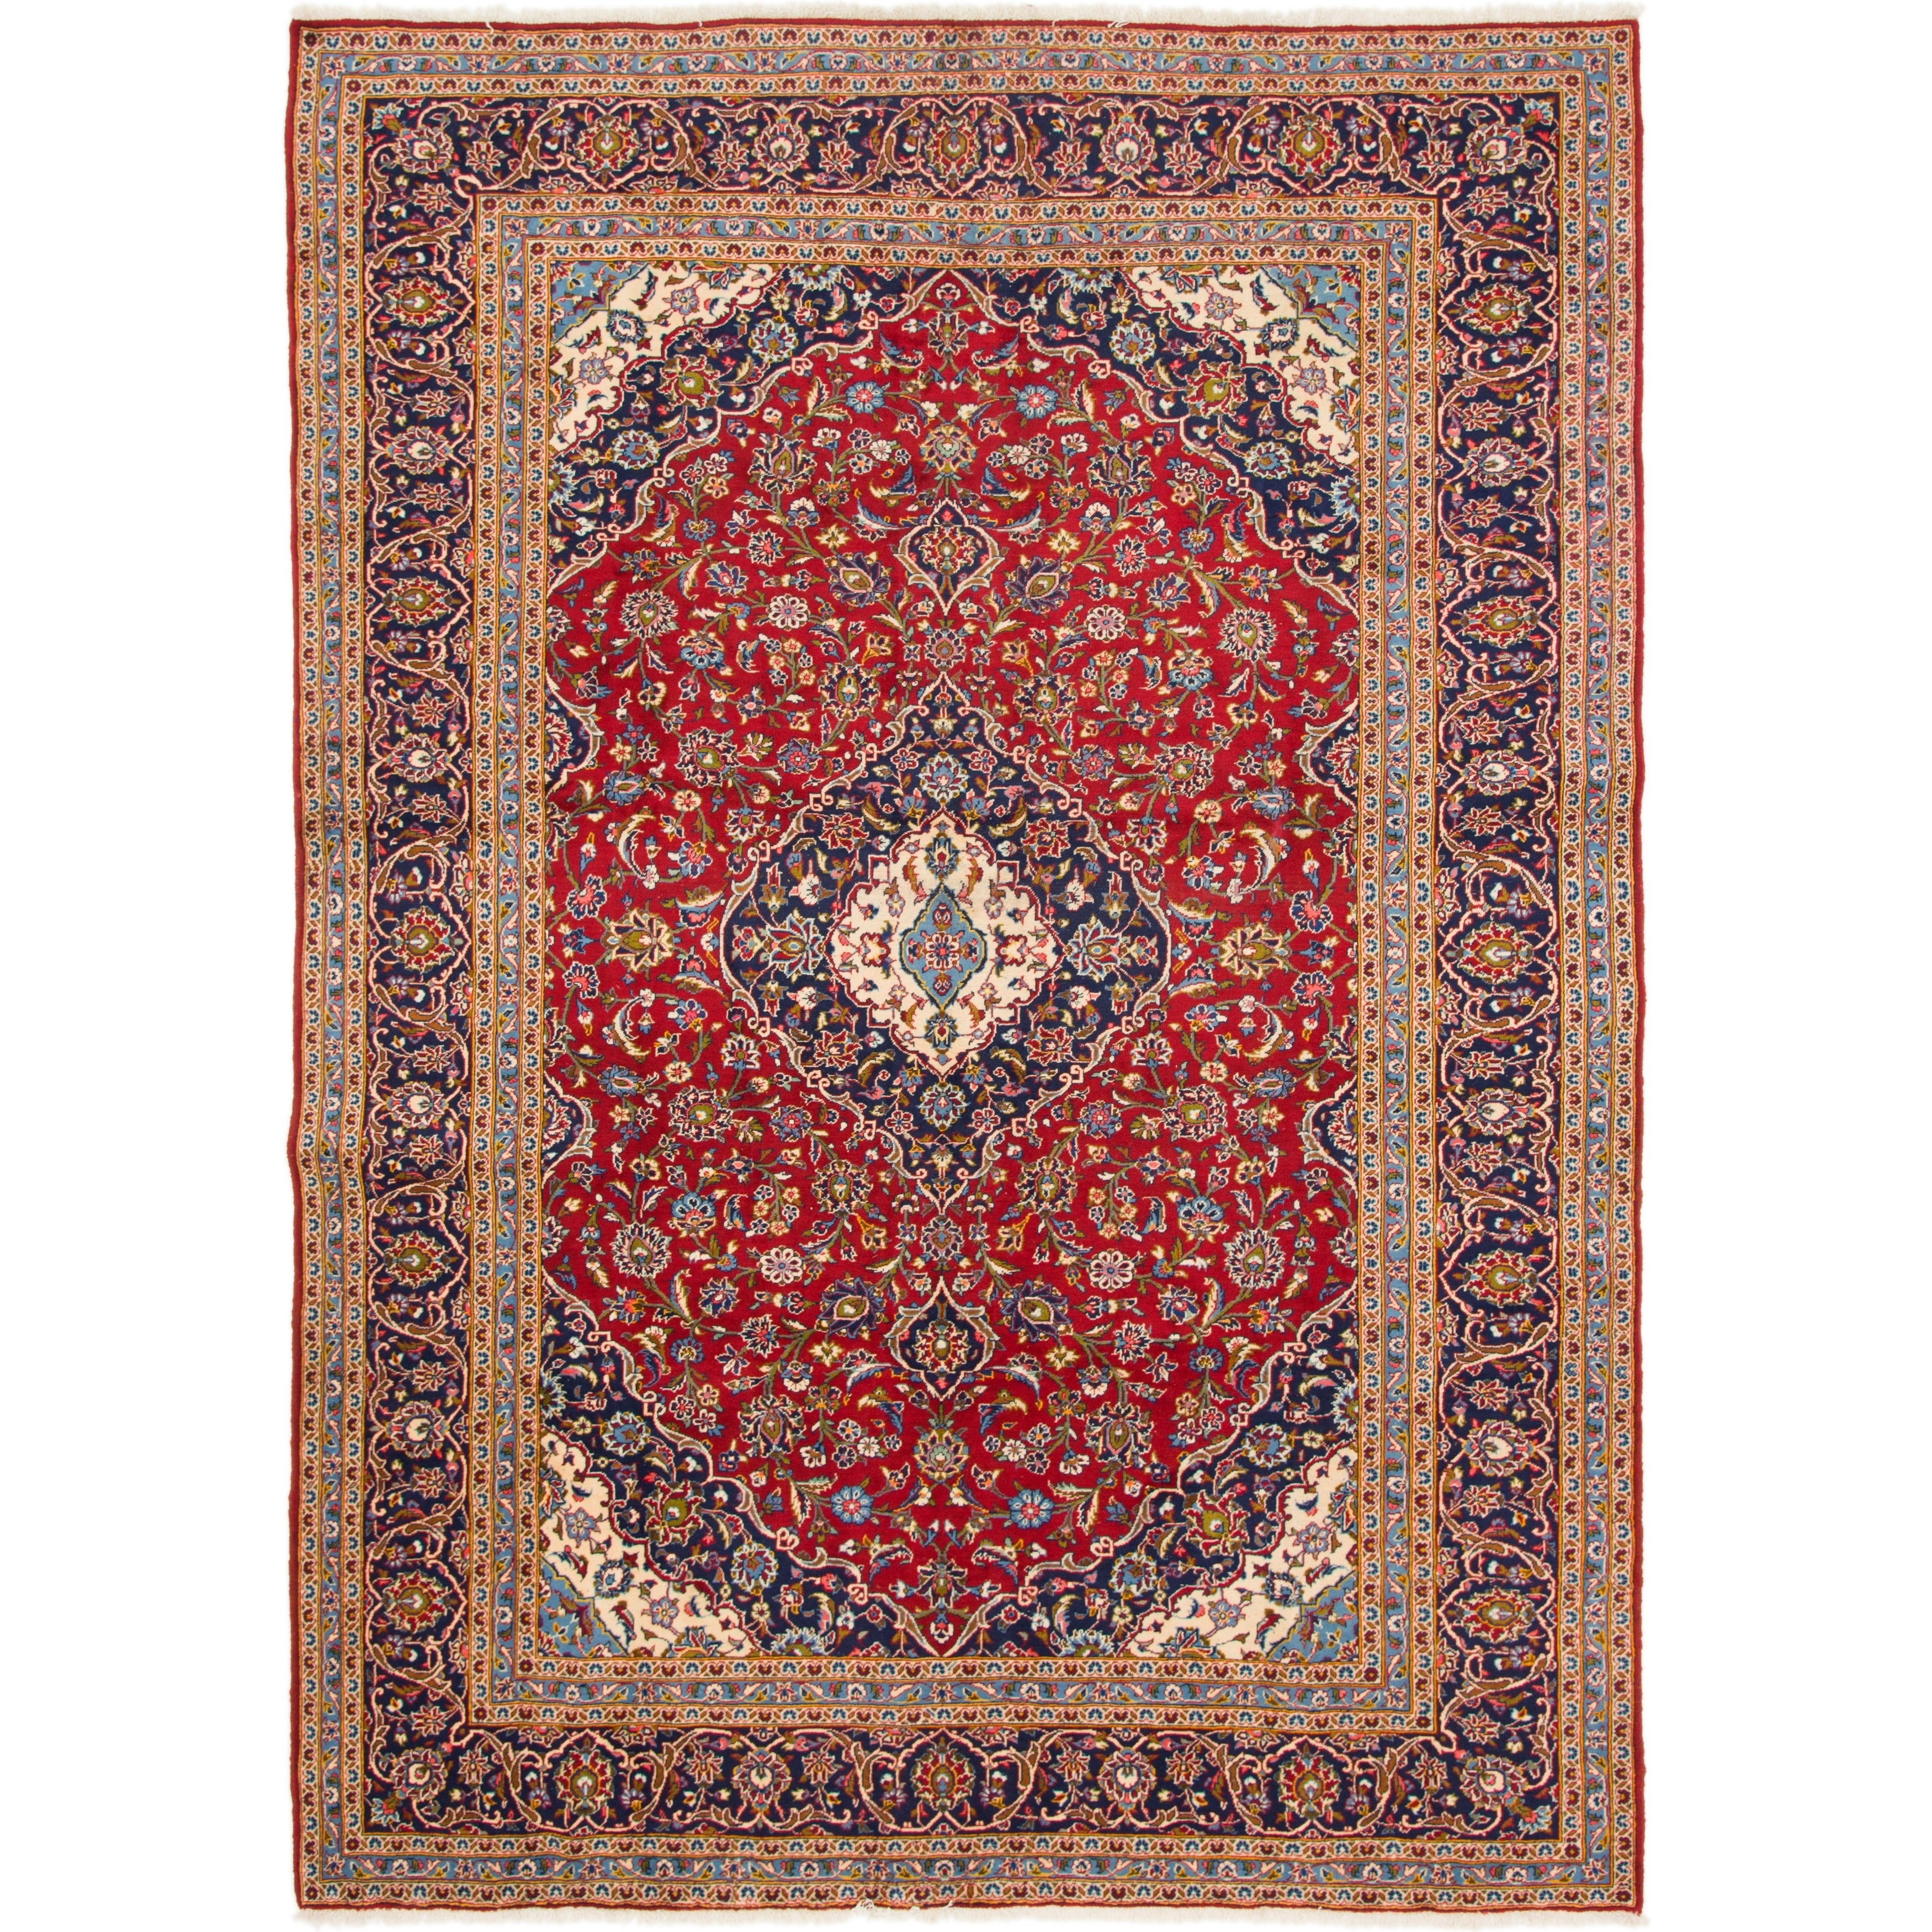 Hand Knotted Kashan Wool Area Rug - 9 8 x 13 6 (Red - 9 8 x 13 6)